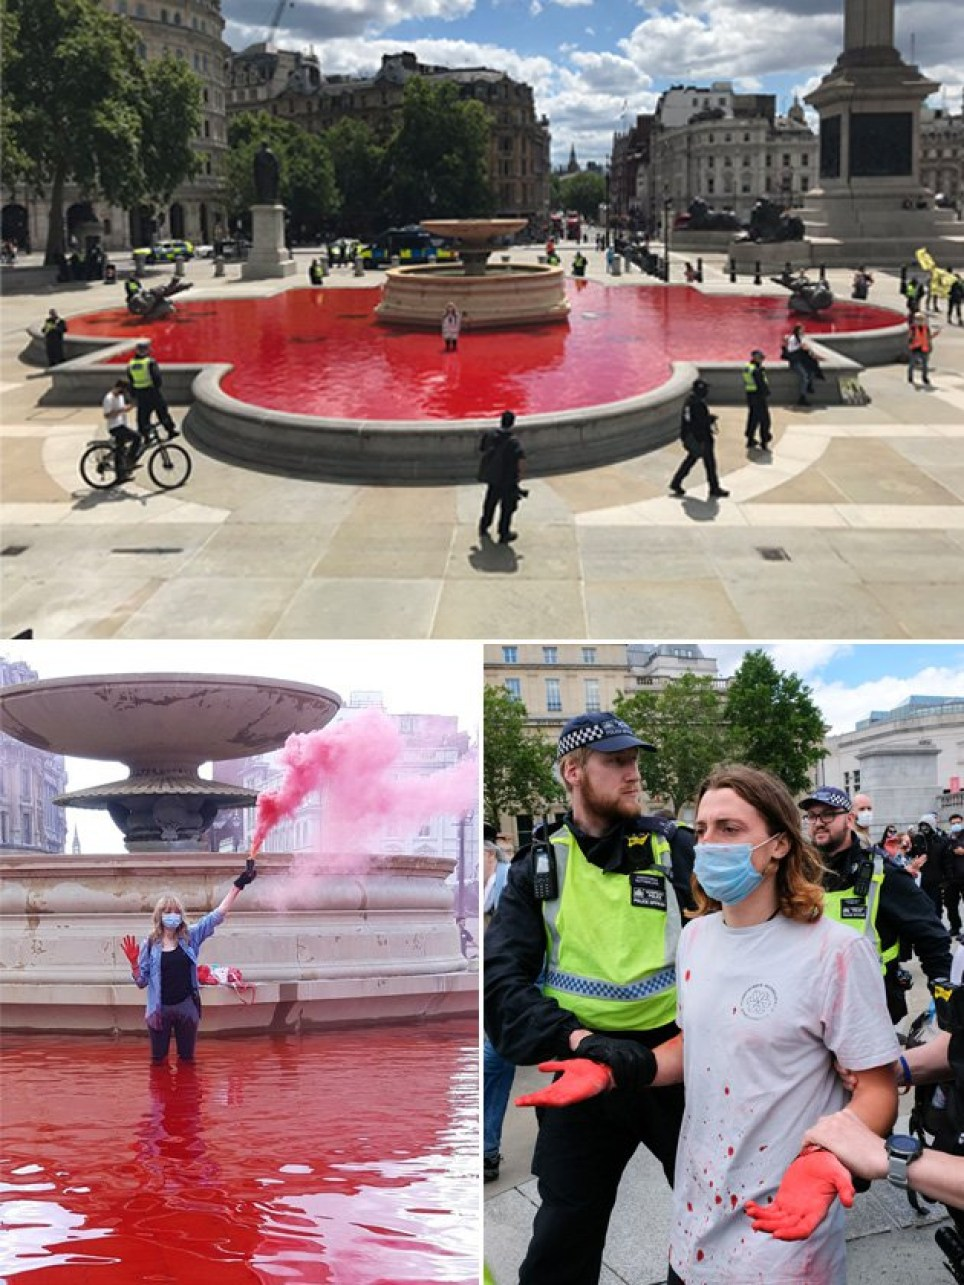 Trafalgar Square fountains dyed blood red by Animal Rebellion